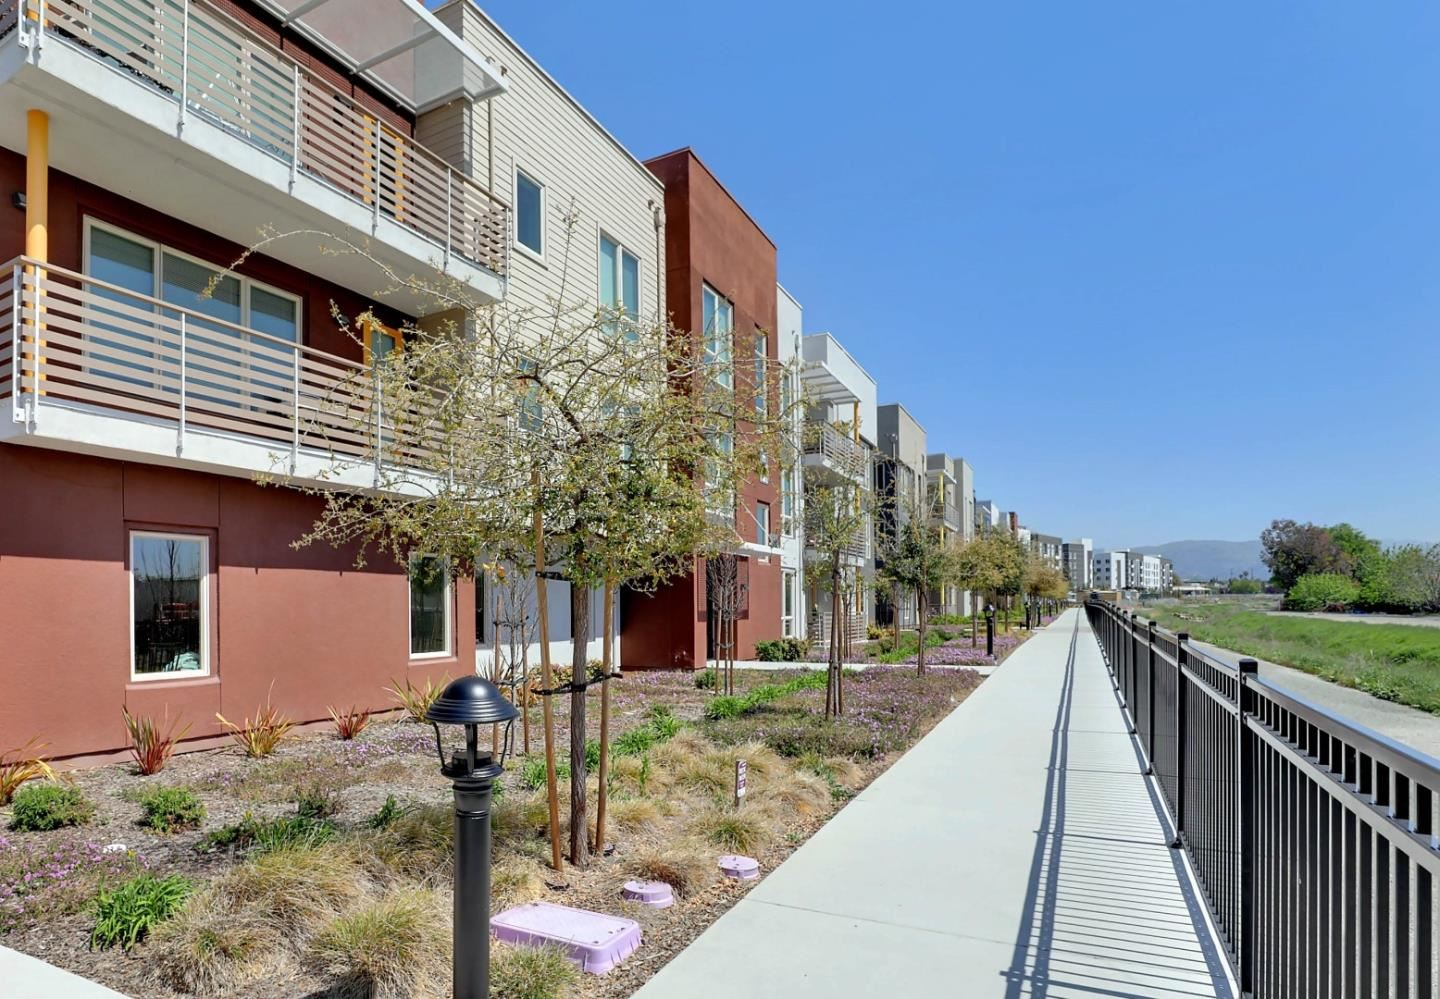 Photo for 330 Riesling AVE 10 #10, MILPITAS, CA 95035 (MLS # ML81838143)